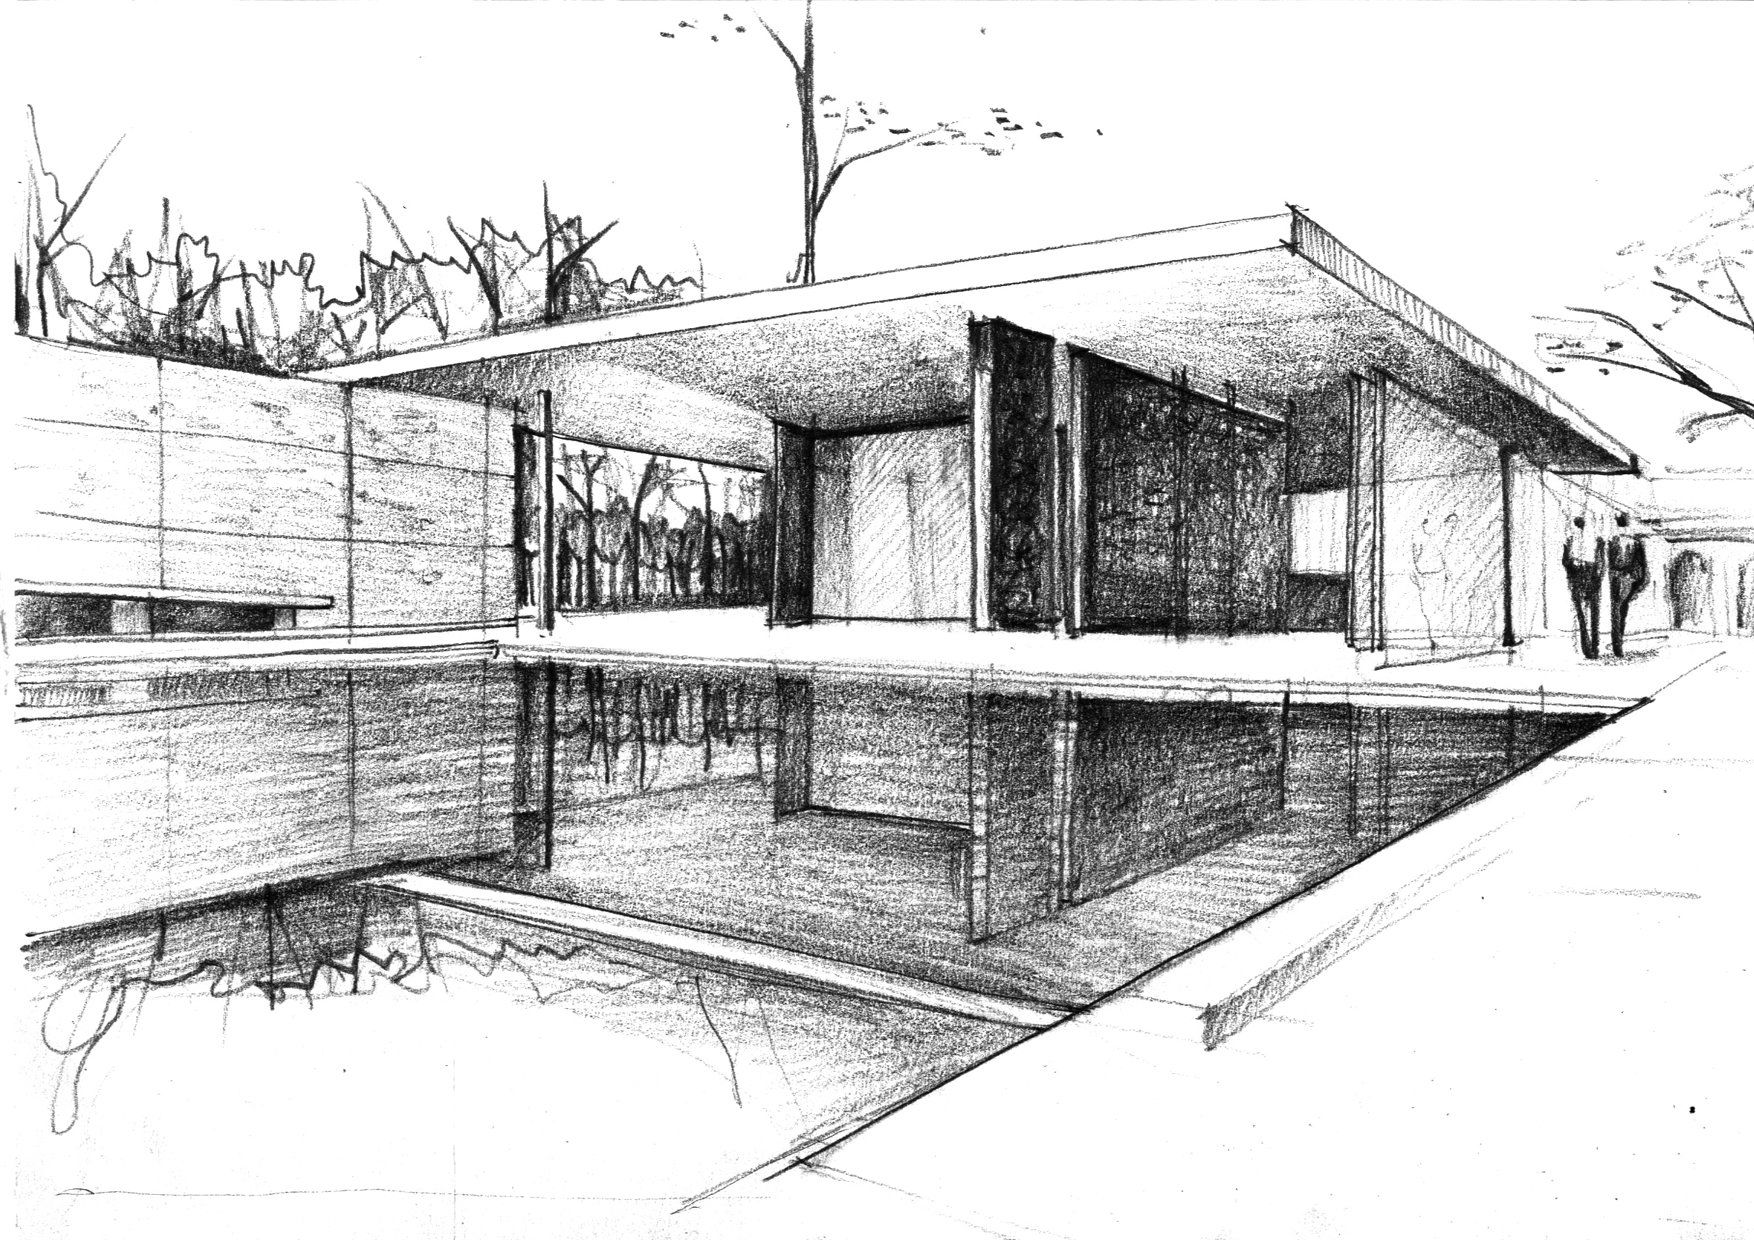 mies van der rohe architecture sketches google search sketch pinterest sketches vans. Black Bedroom Furniture Sets. Home Design Ideas